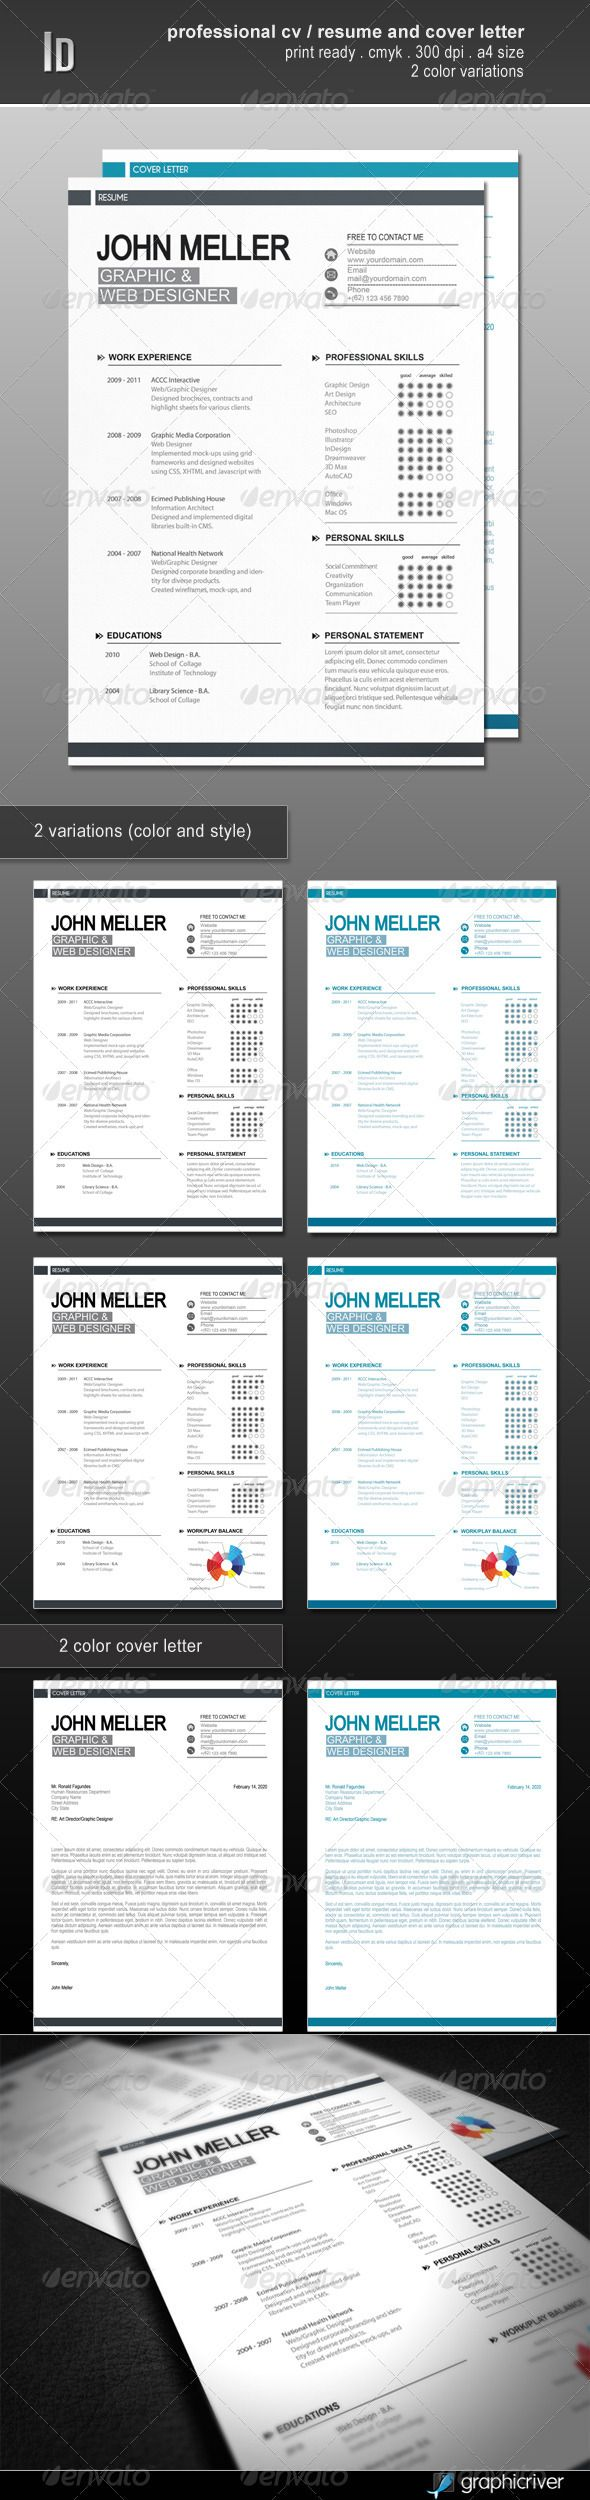 Professional Cv Resume And Cover Letter GraphicRiver Item for Sale